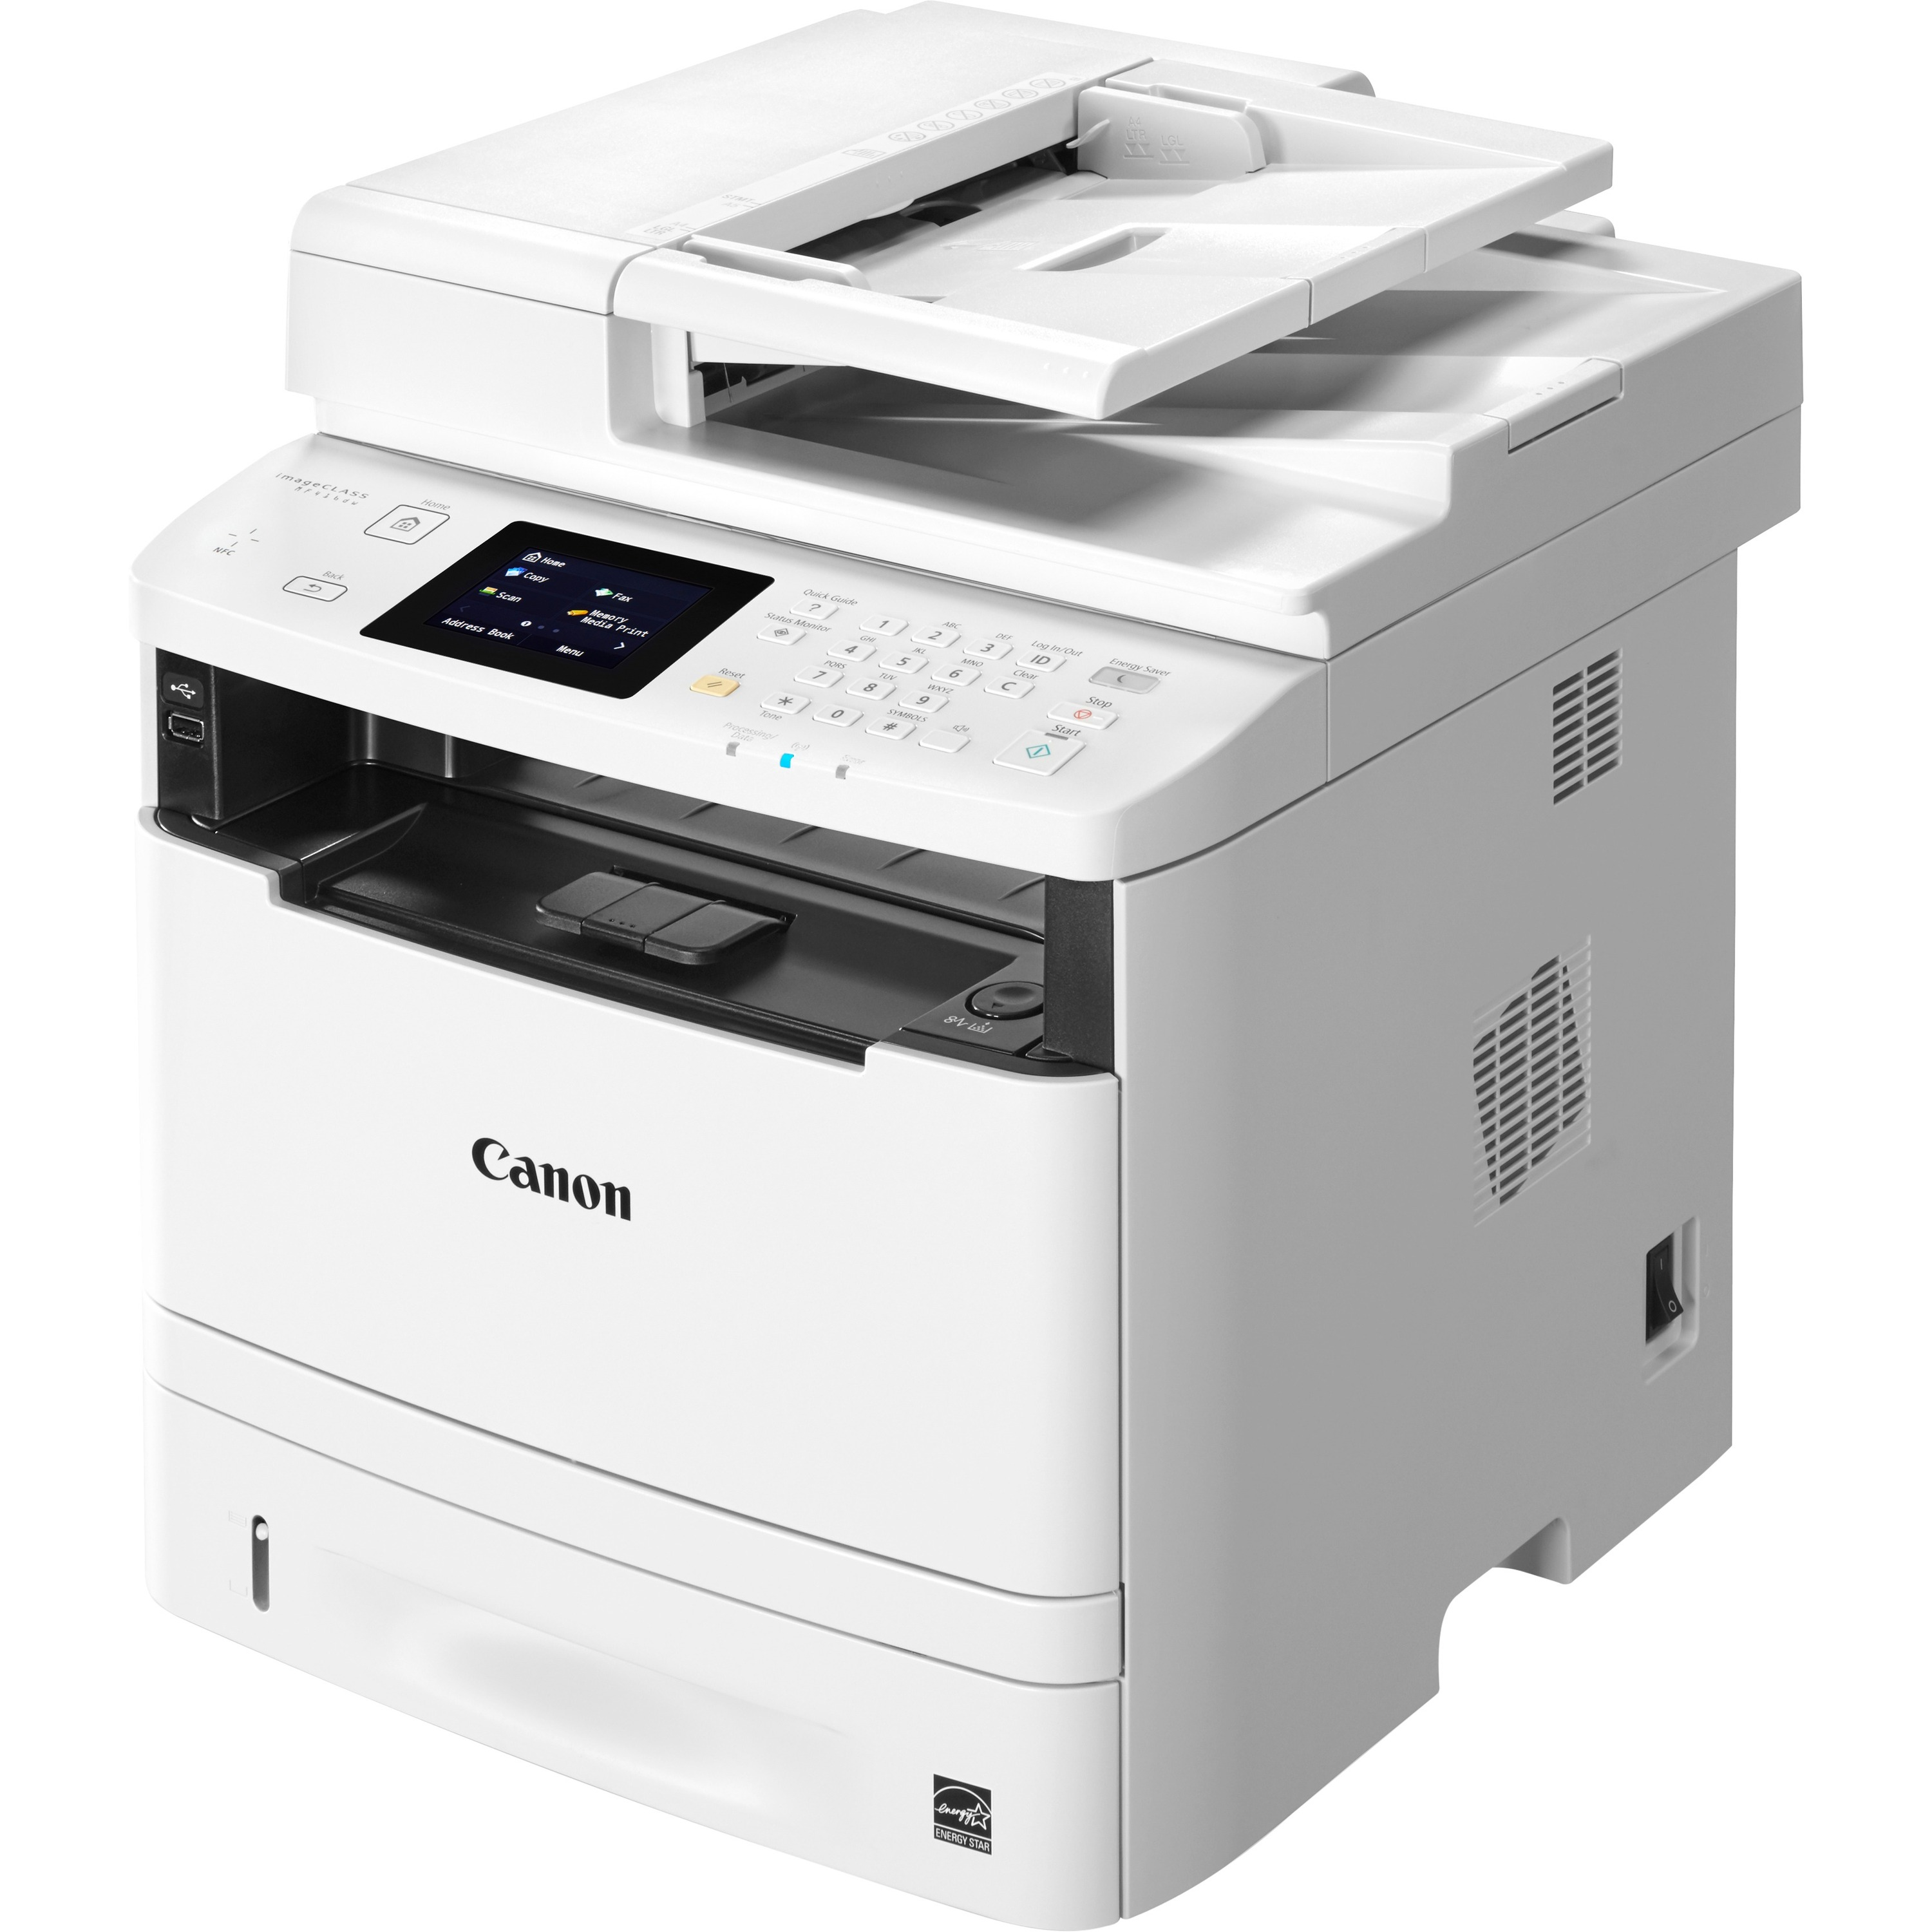 Canon i-SENSYS MF410 MF416dw Laser Multifunction Printer - Monochrome